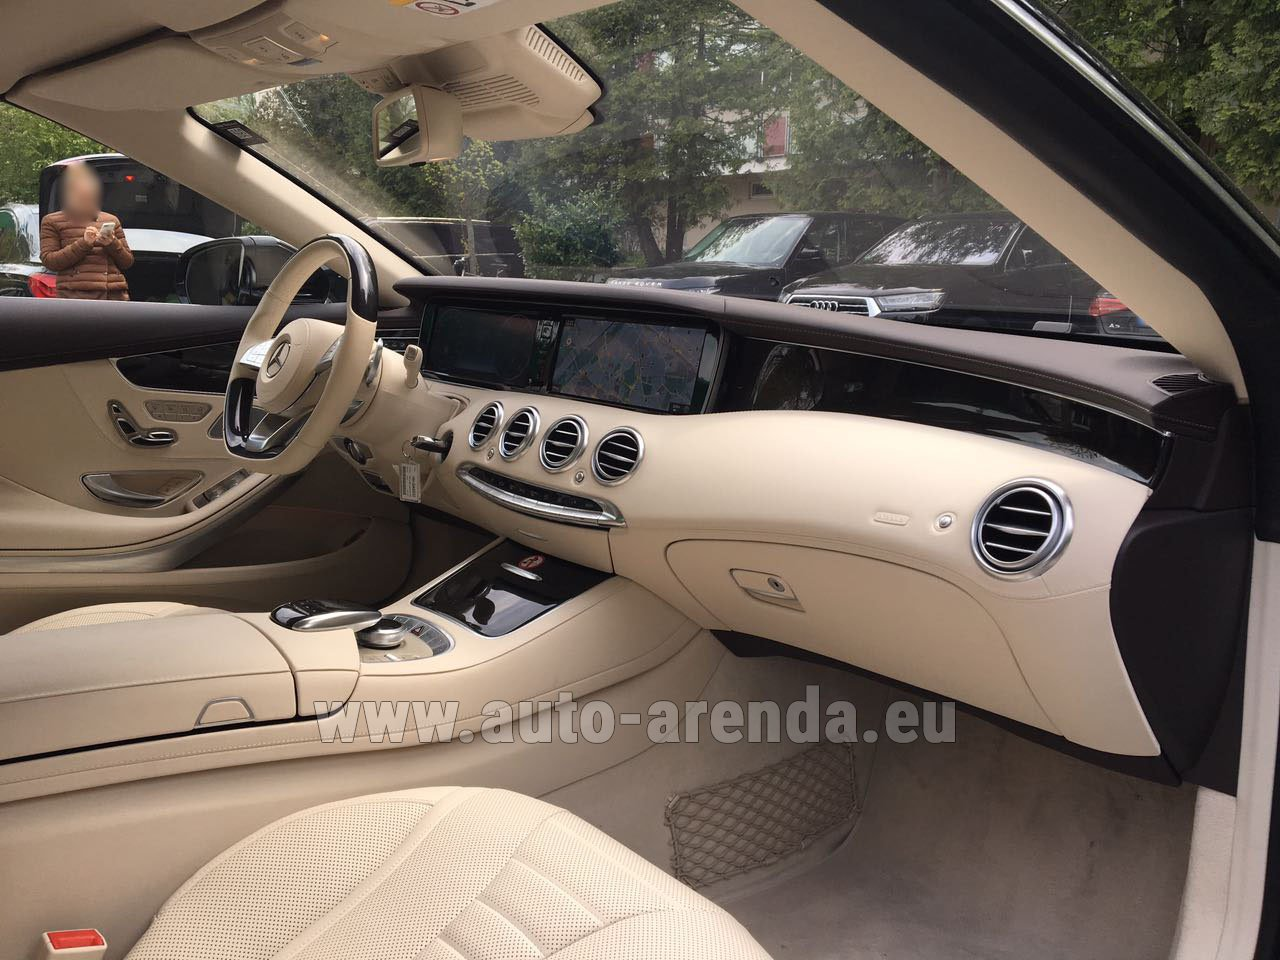 rent the mercedes benz s class s500 cabriolet car in grenoble. Black Bedroom Furniture Sets. Home Design Ideas